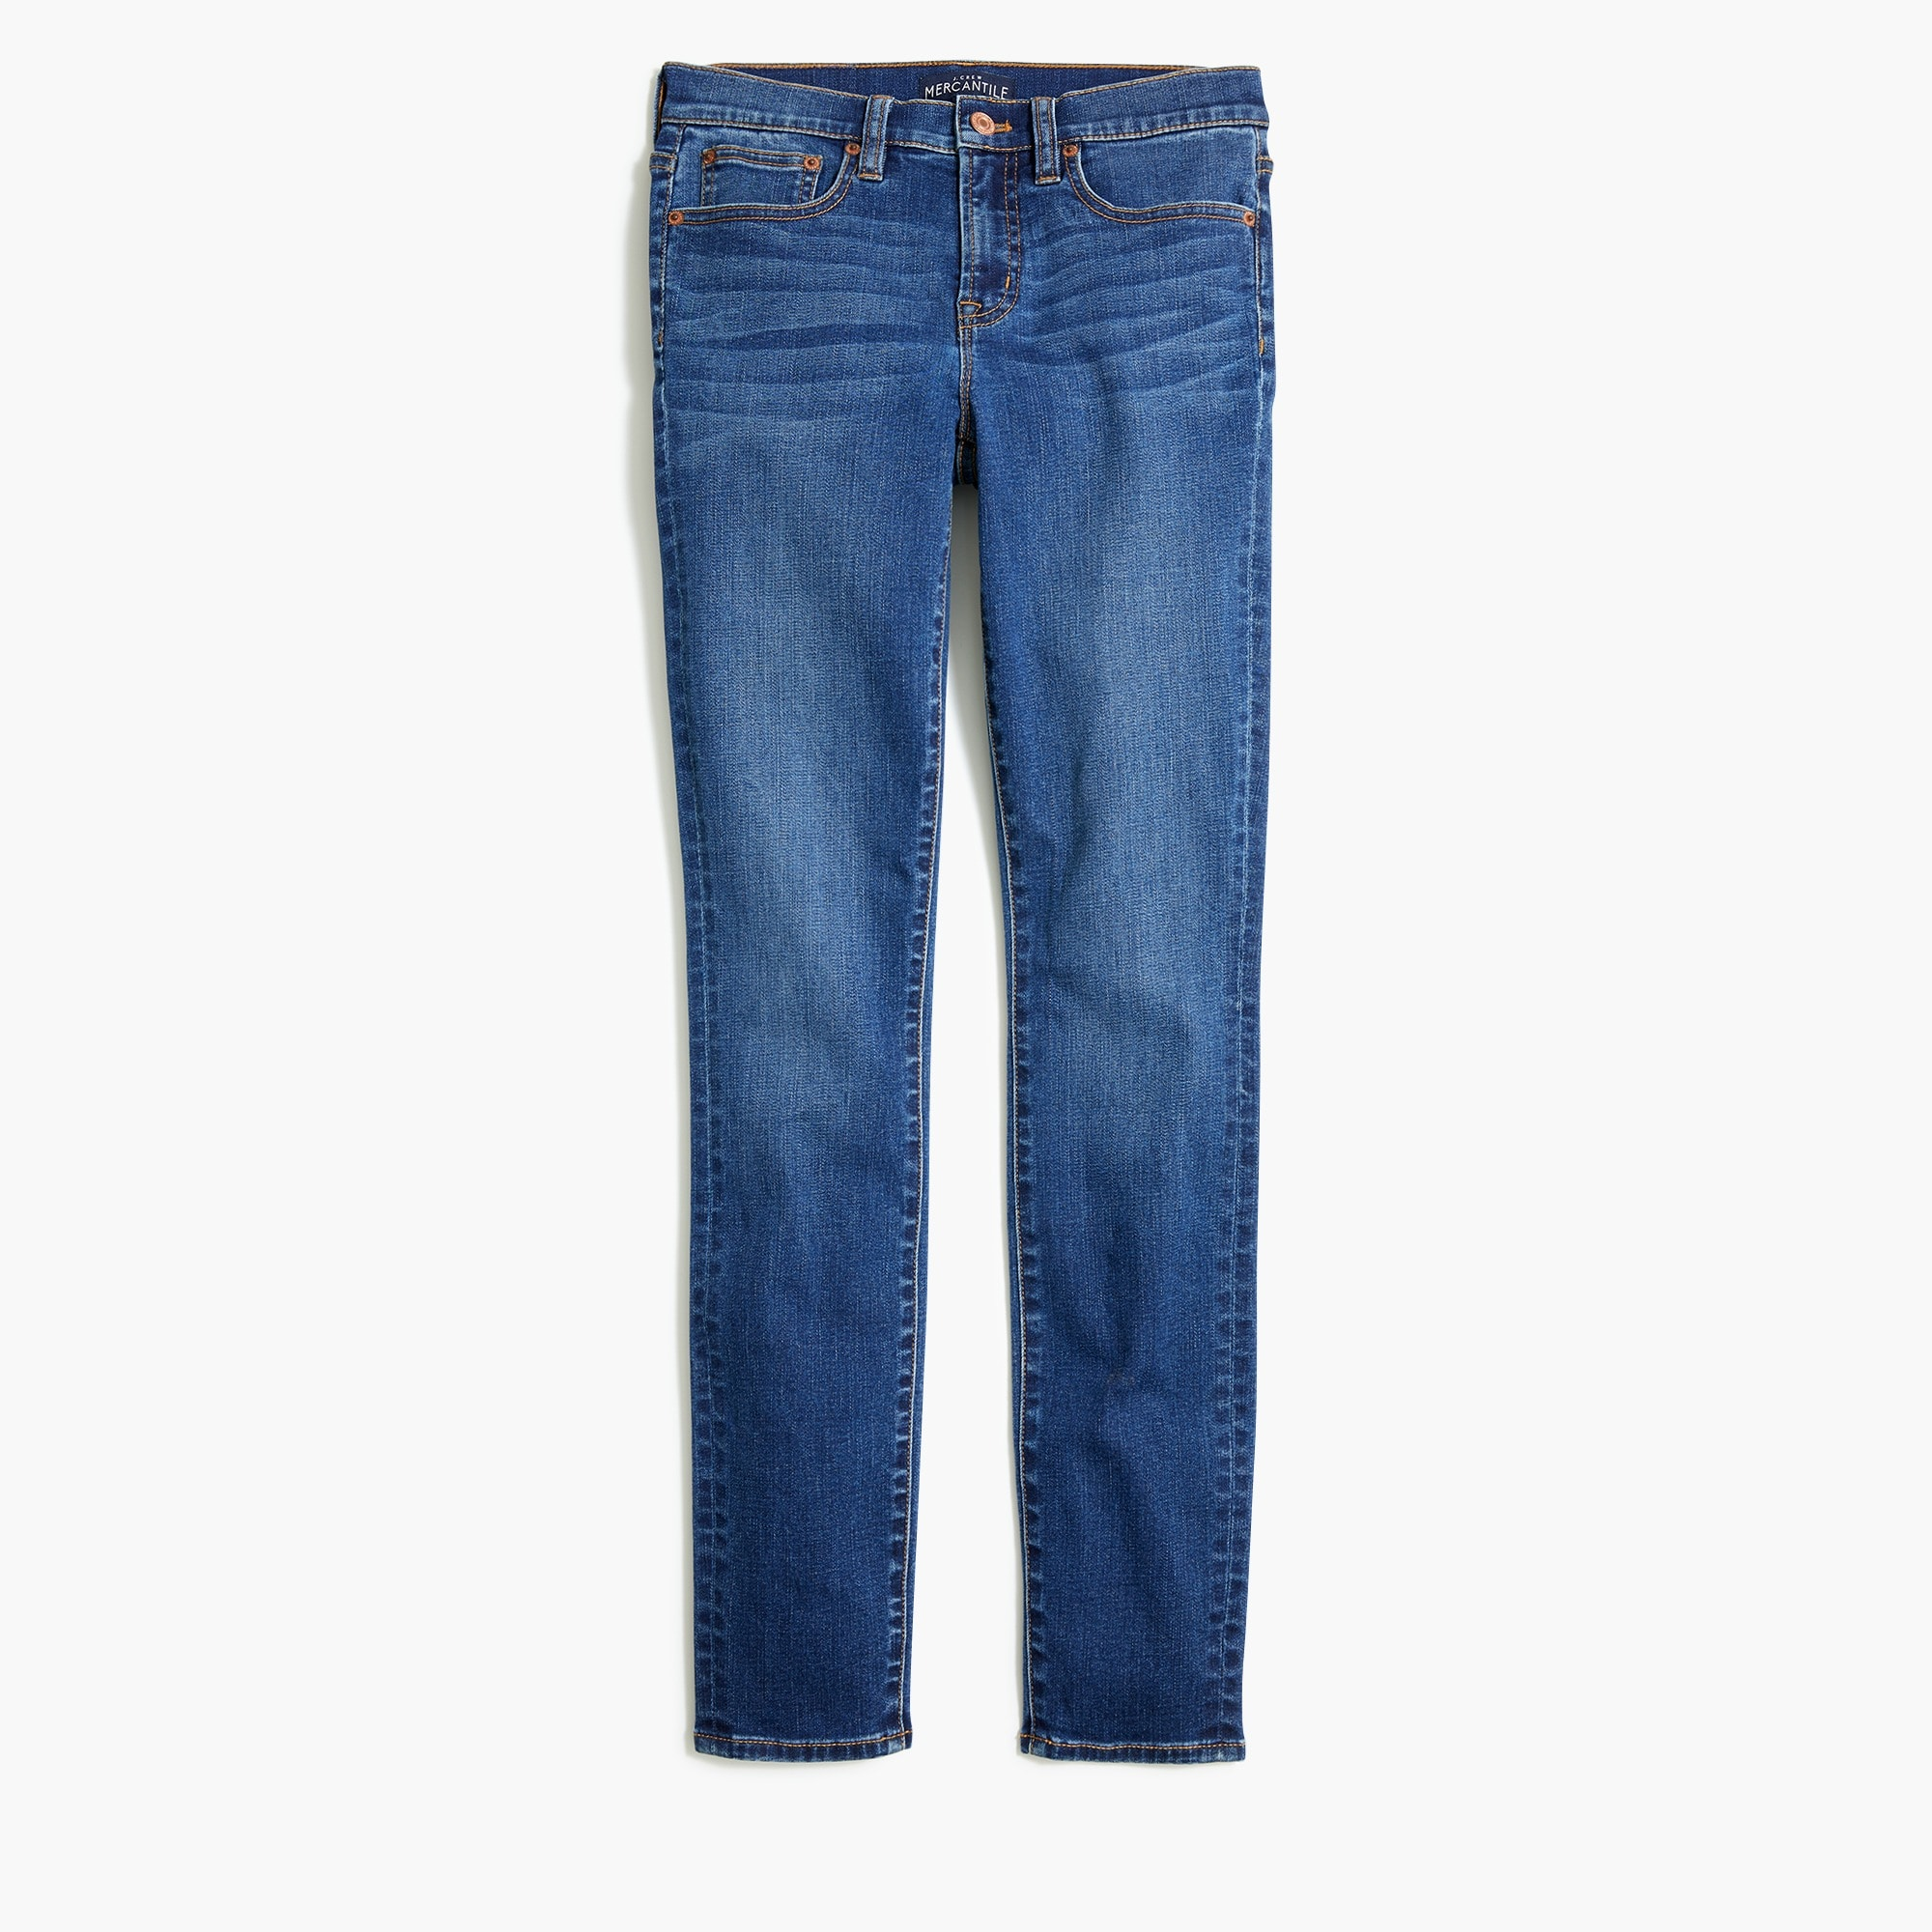 "8"" midrise skinny jean in Rockaway wash with 30"" inseam"